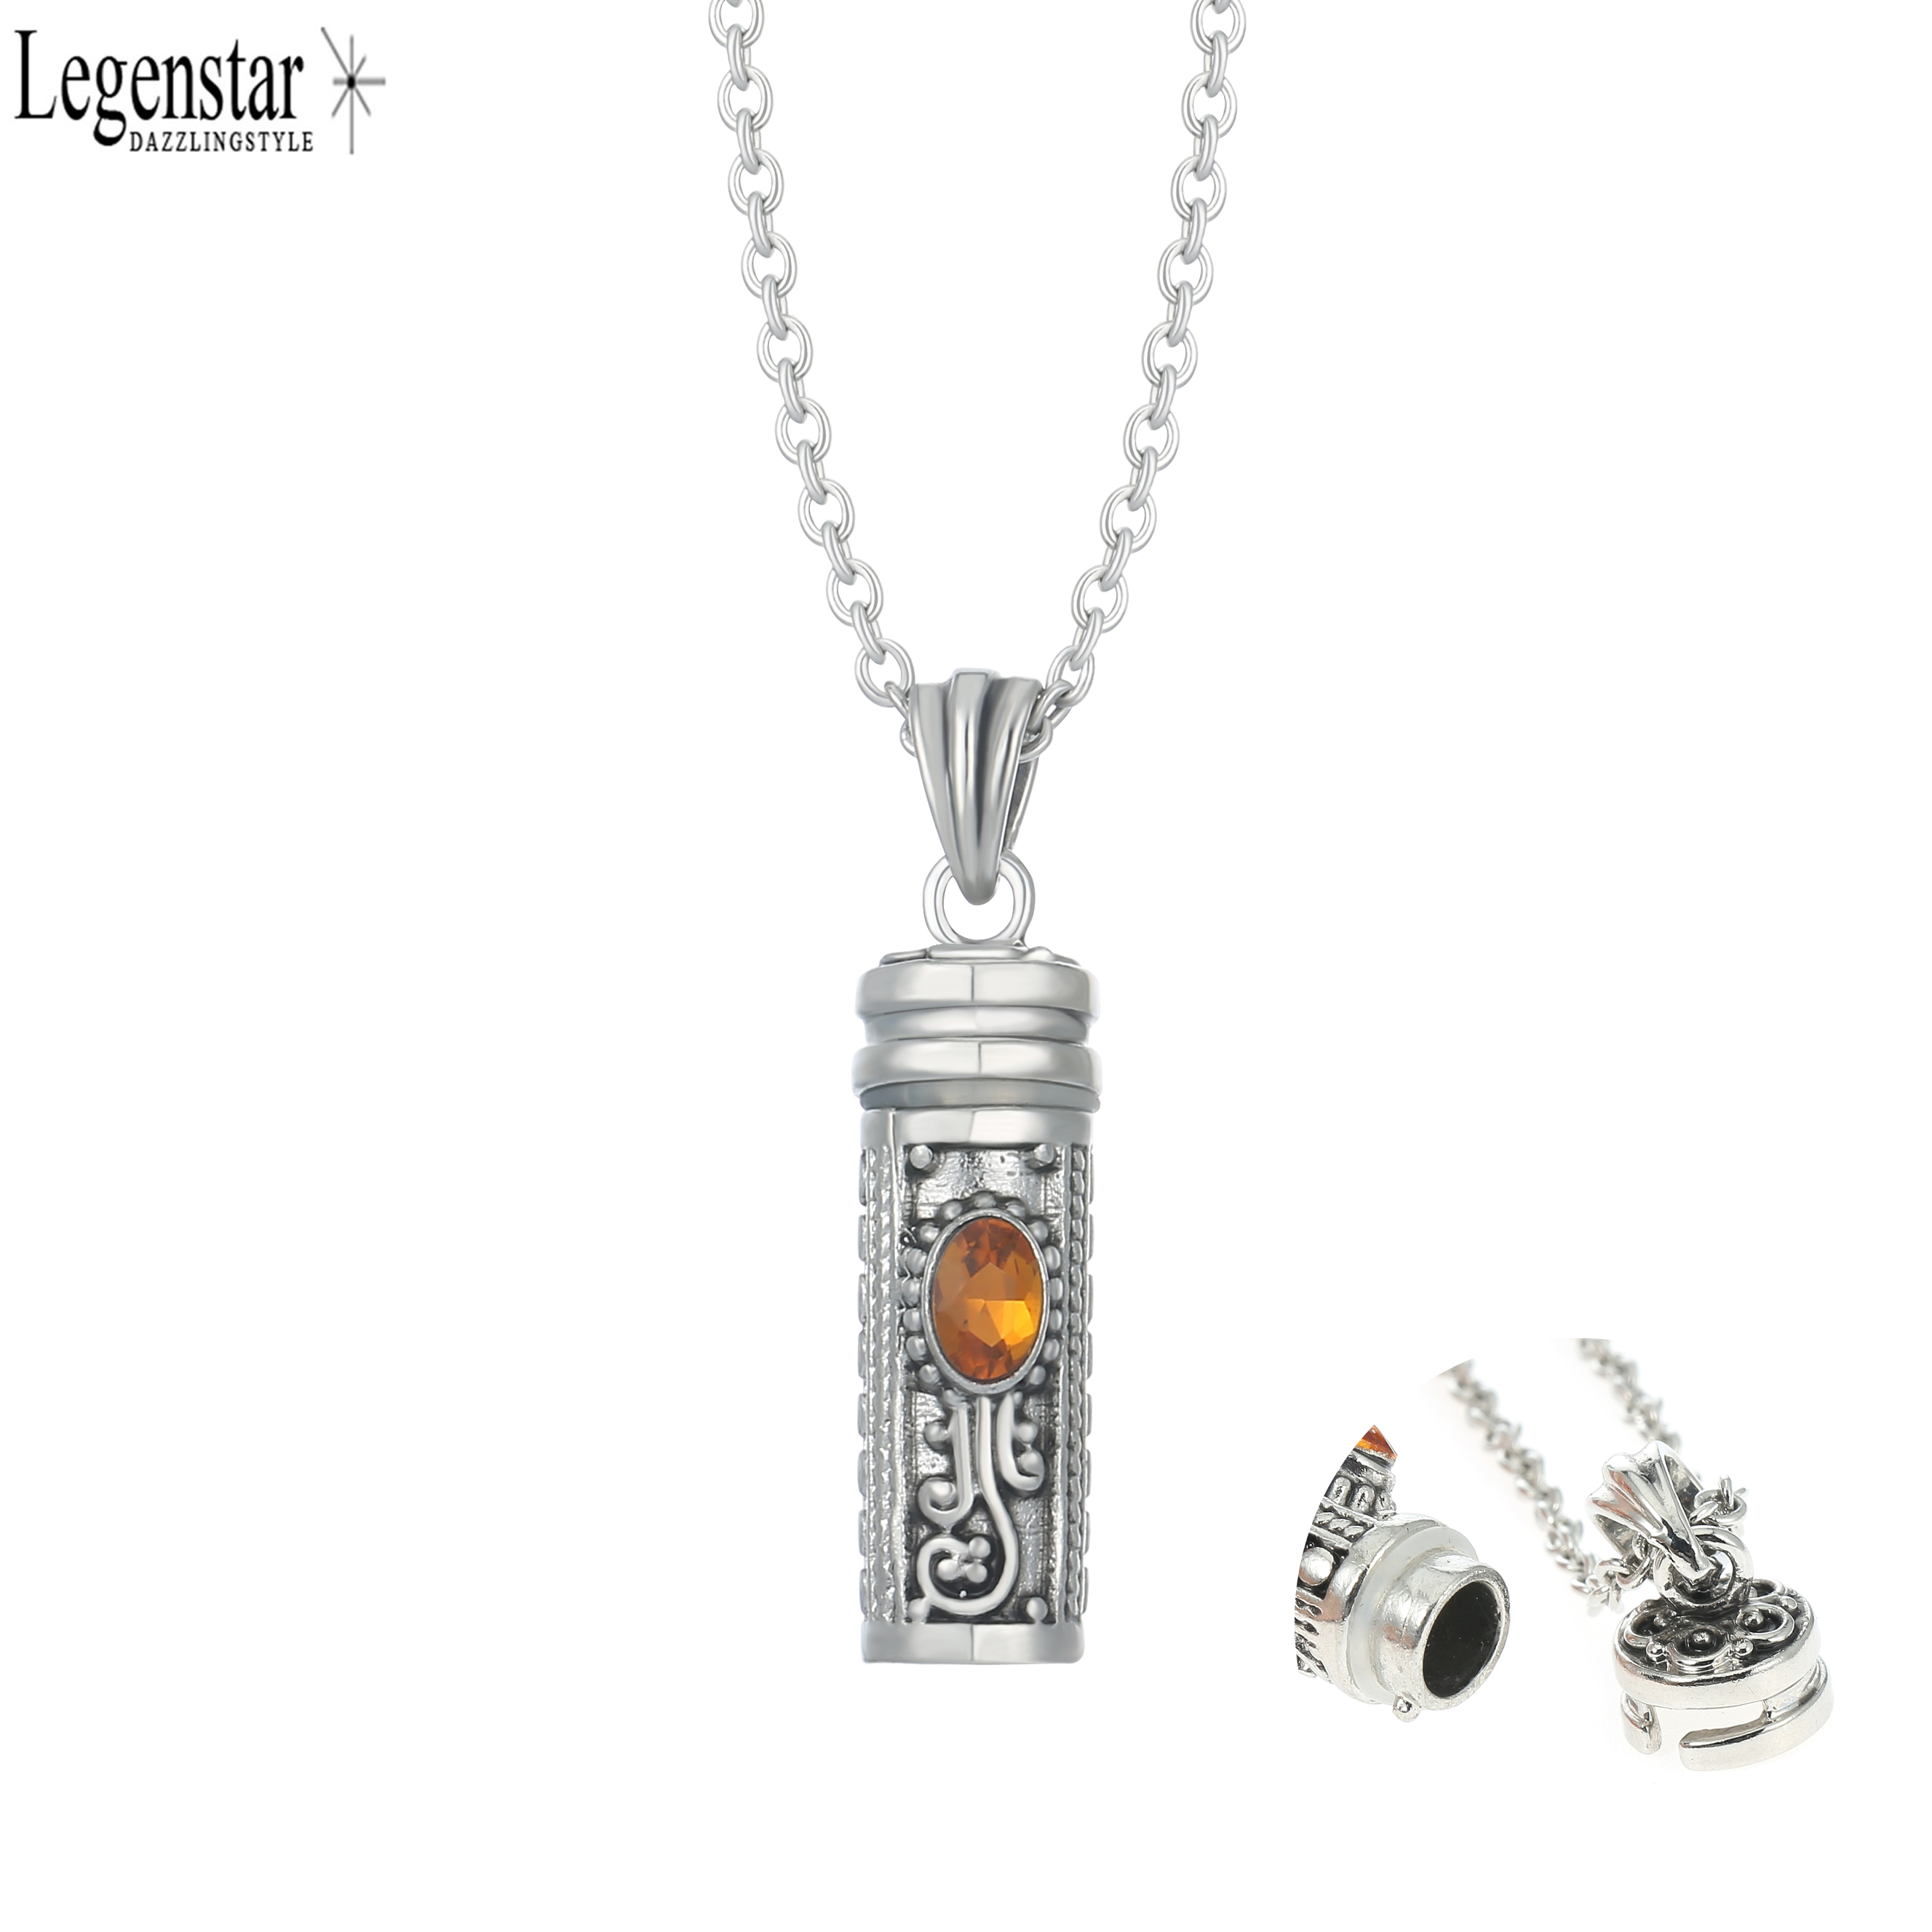 2X Silver Essential Oil Diffuser Apple Locket Ball Pendant Fit DIY Necklace Gift